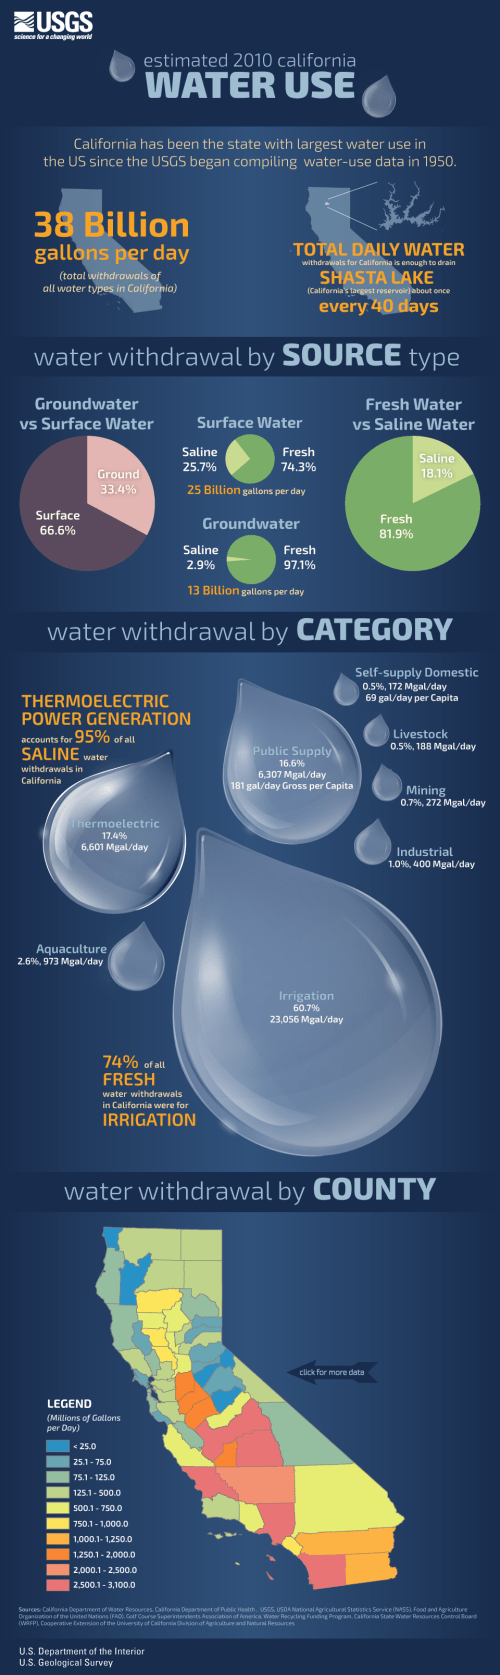 small resolution of infographic displaying 2010 california water use data it includes a clickable map of california counties